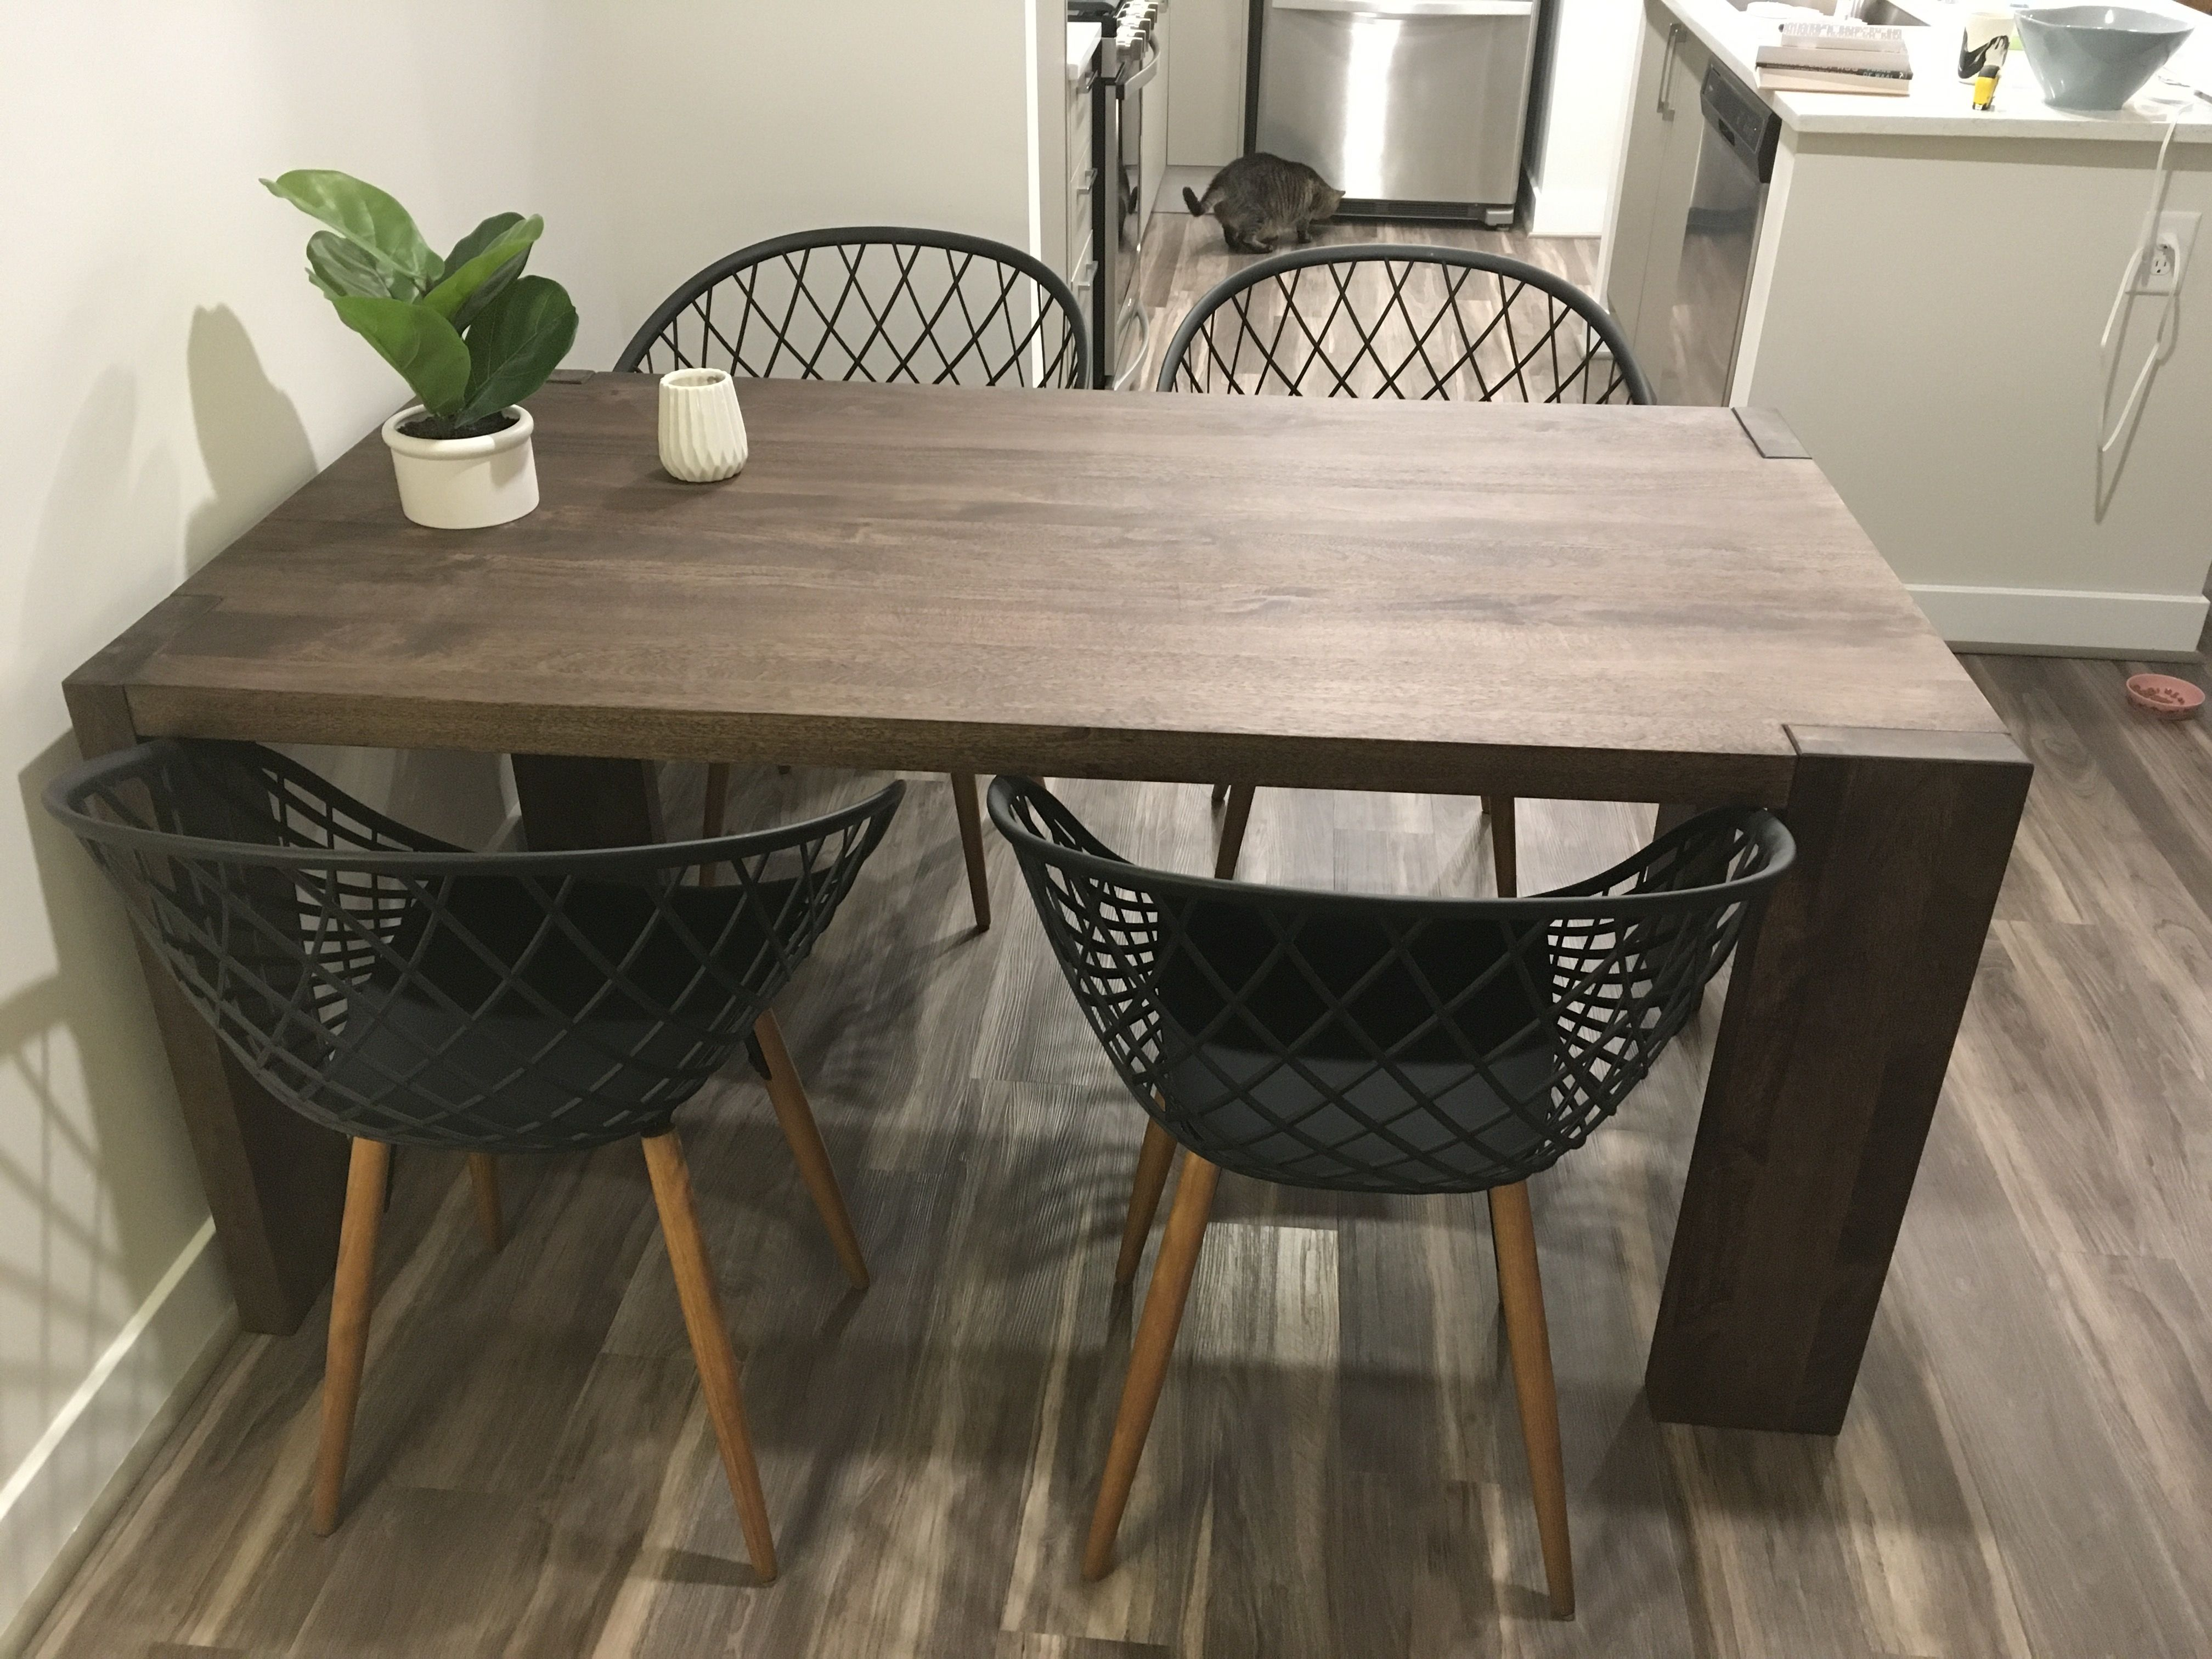 Blox 35x63 Dining Table Sidera Chair Apartment Therapy S Bazaar